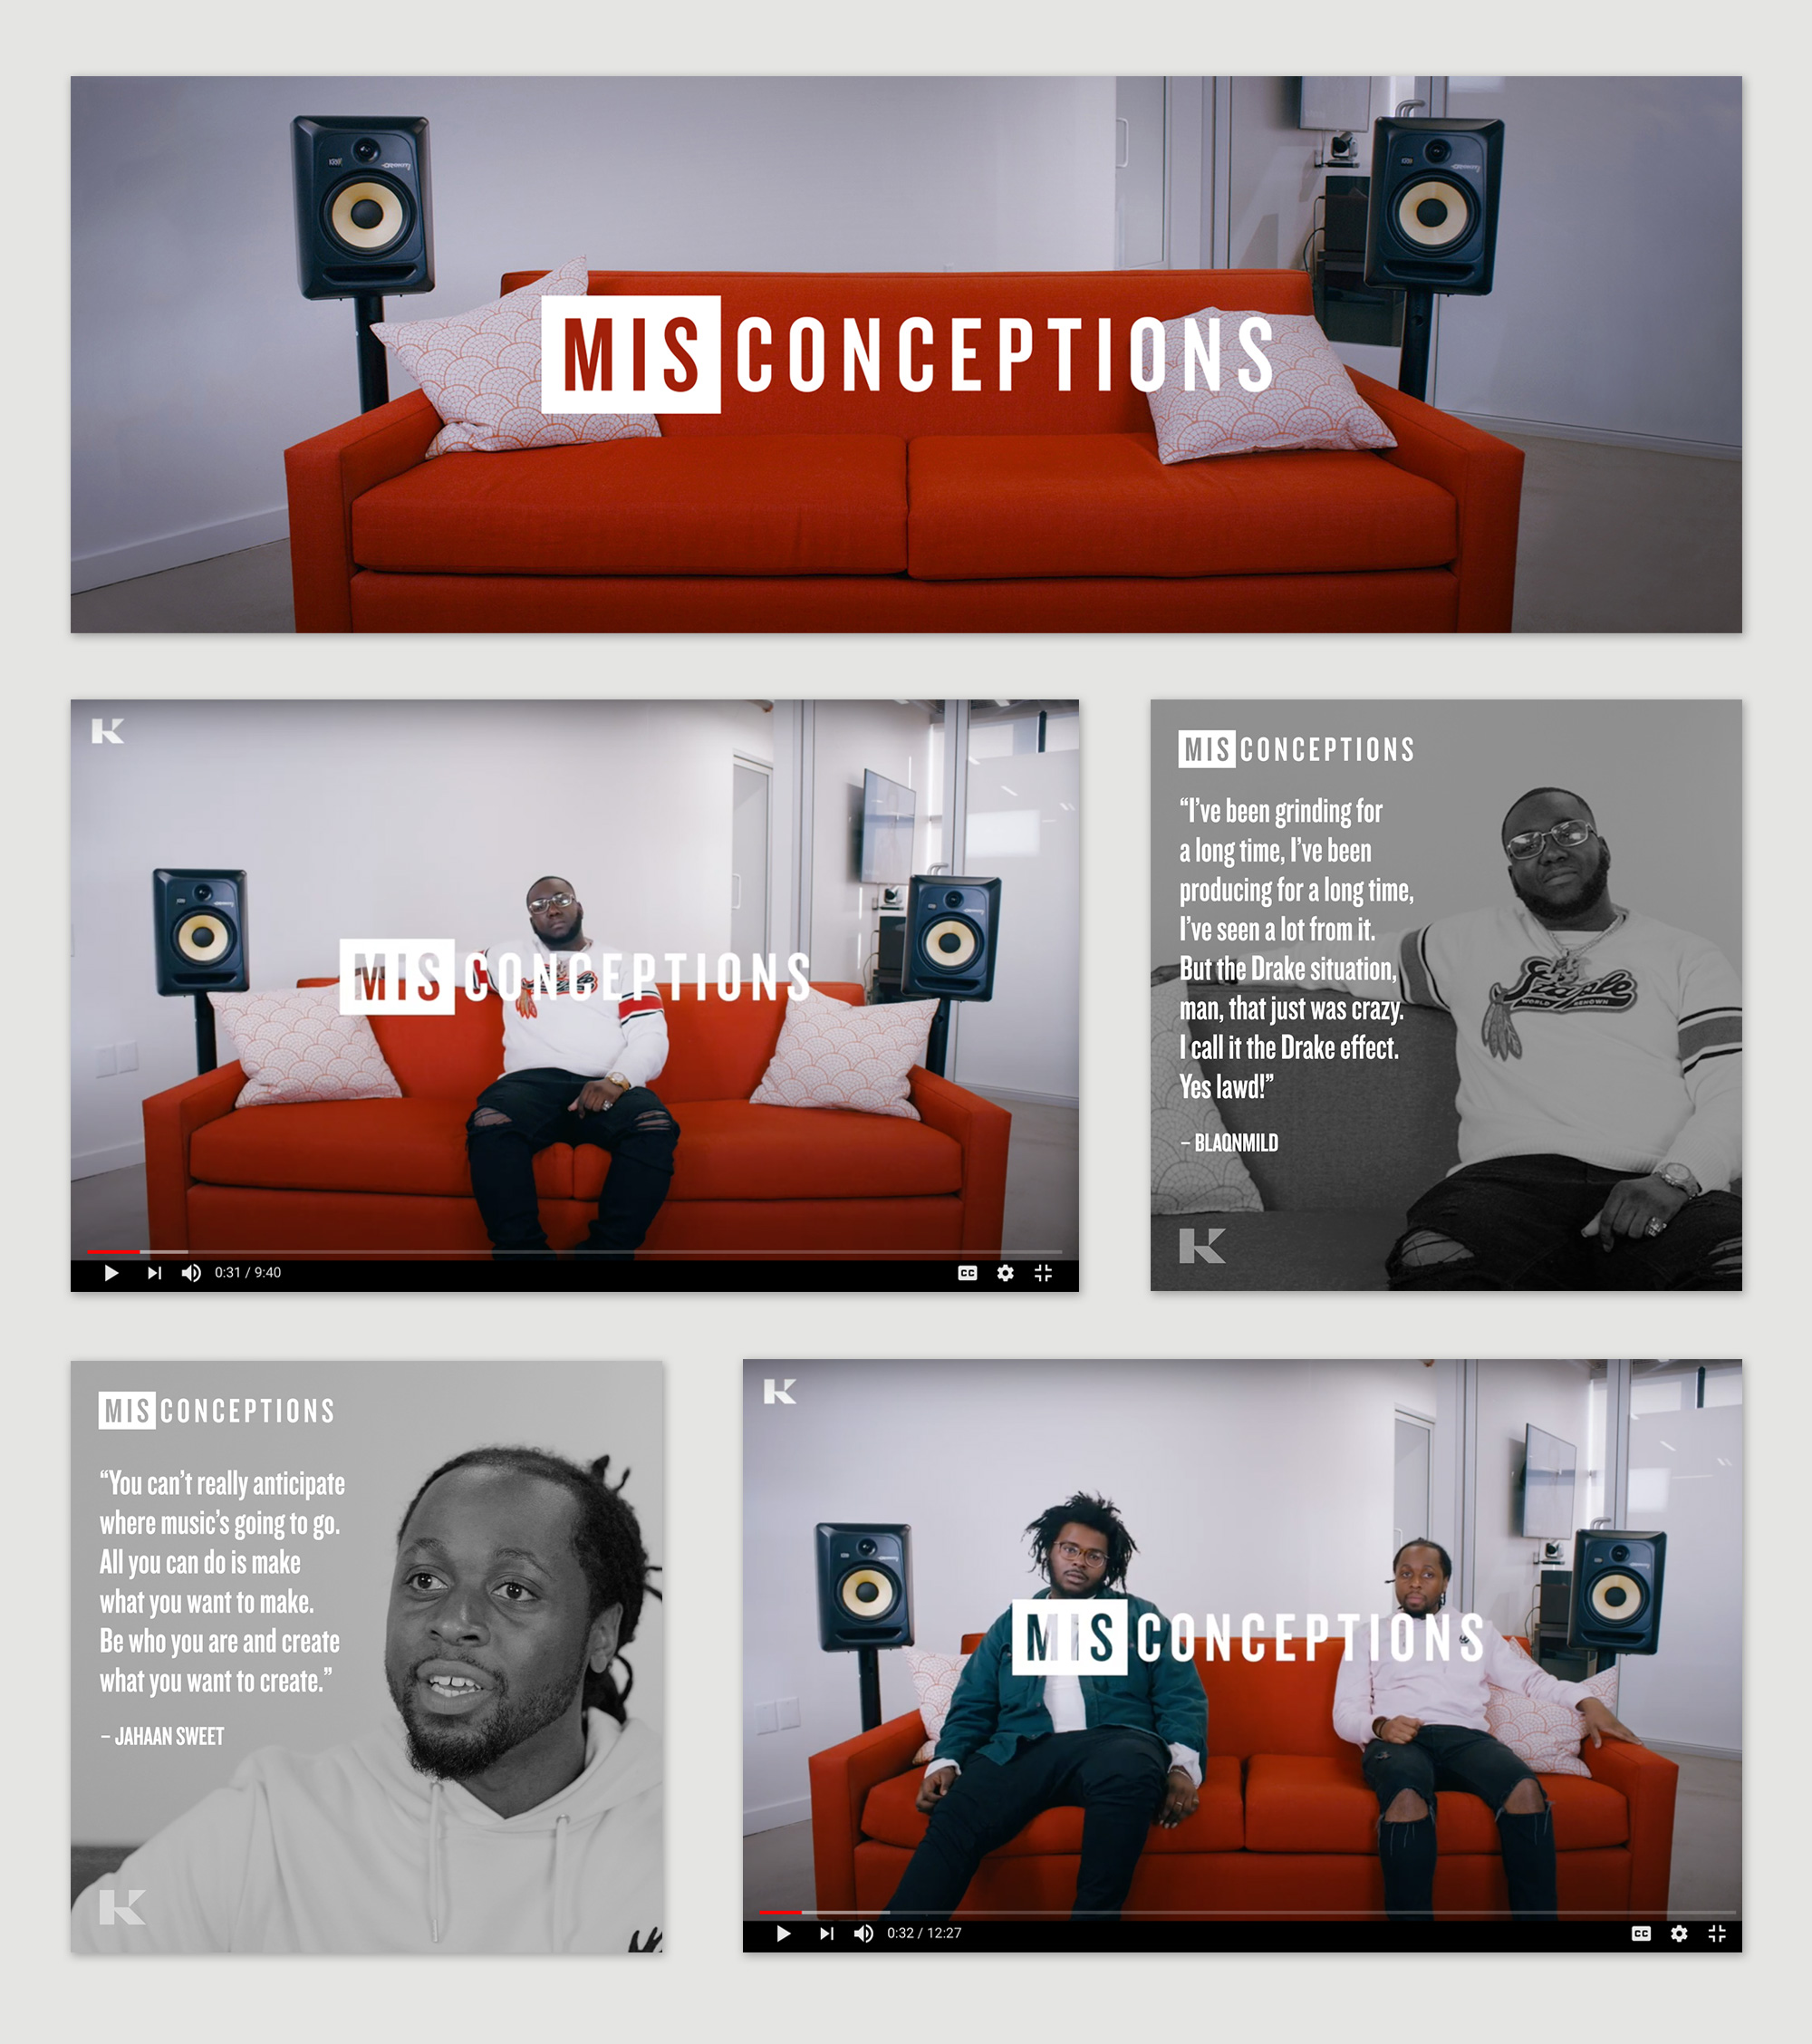 Misconceptions Series